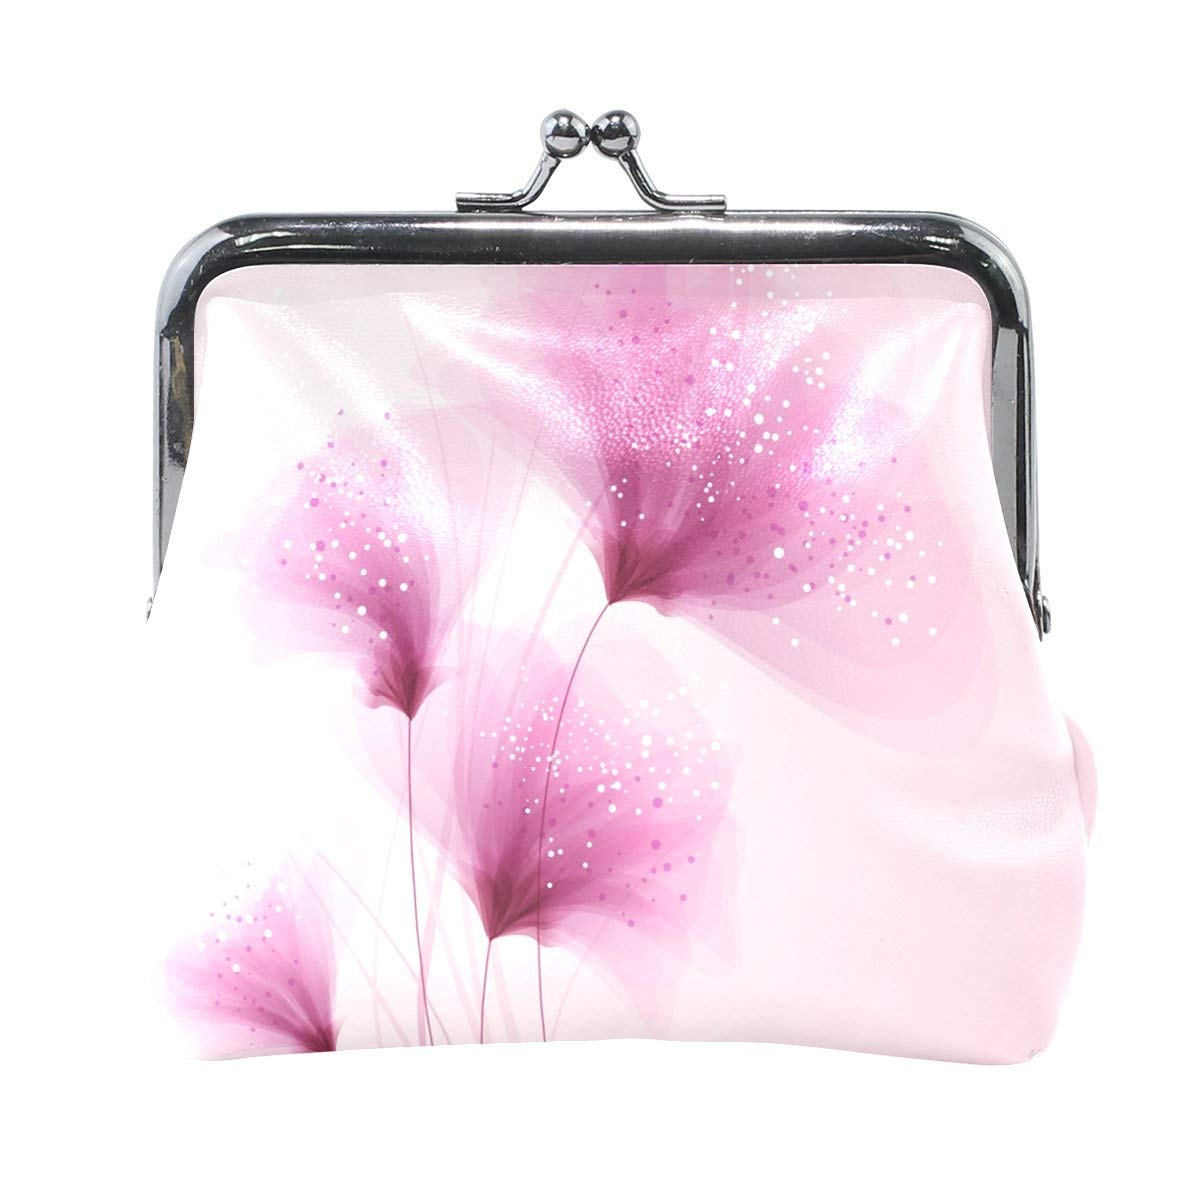 Coin Purses Novelty Small Canvas Leopard Printing Coin Purses Floral Print Coin Purse Wallet With Hasp Mini Coin Earphone Key Carrying Bag Coin Purses & Holders